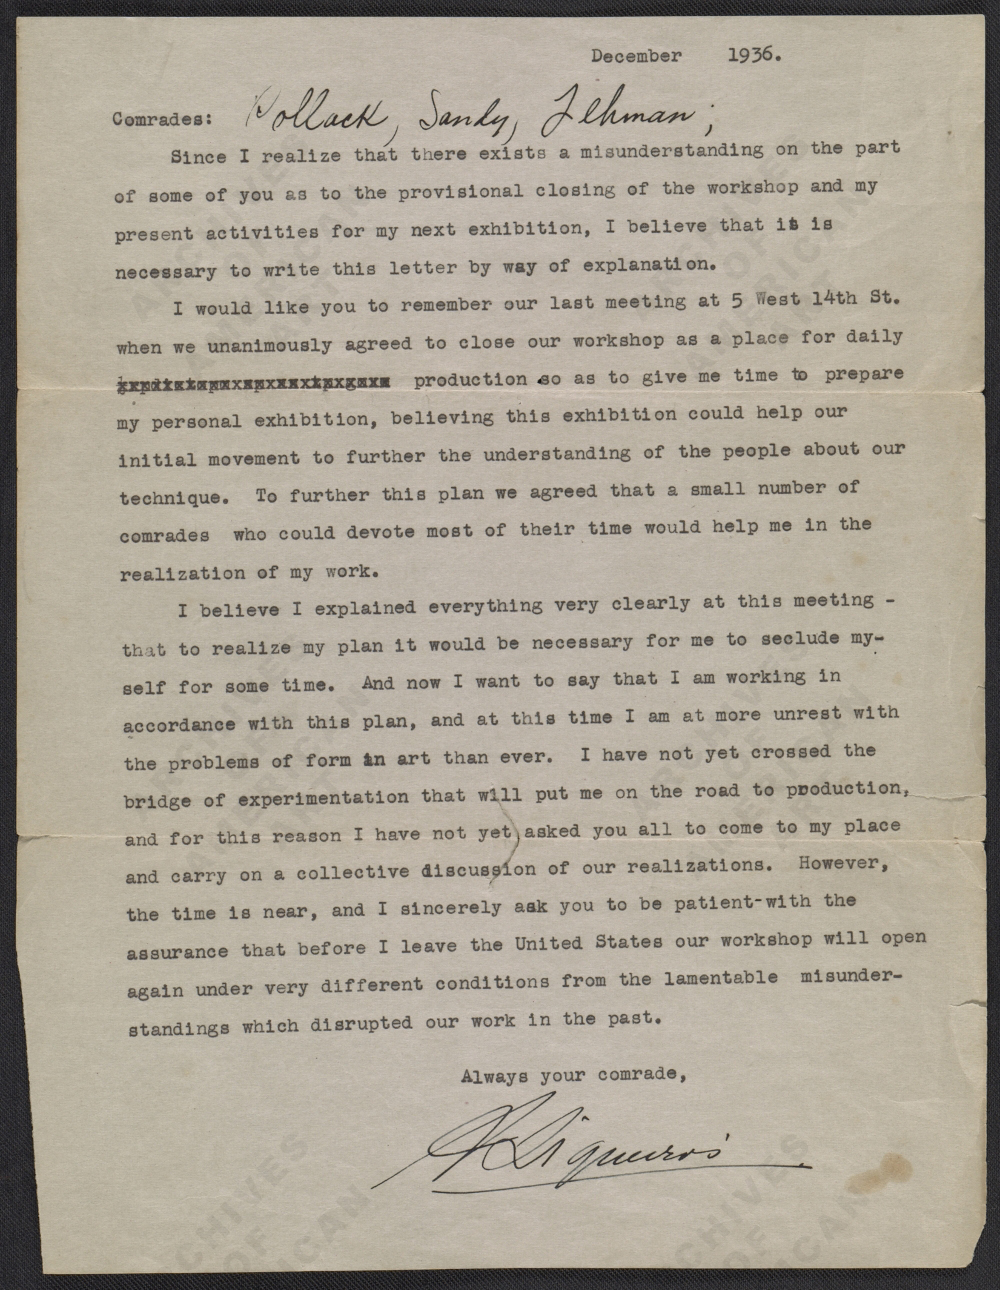 David Alfaro Siqueiros' letter to Jackosn Pollock, Sande Pollock, and Harold Lehman, December of 1936